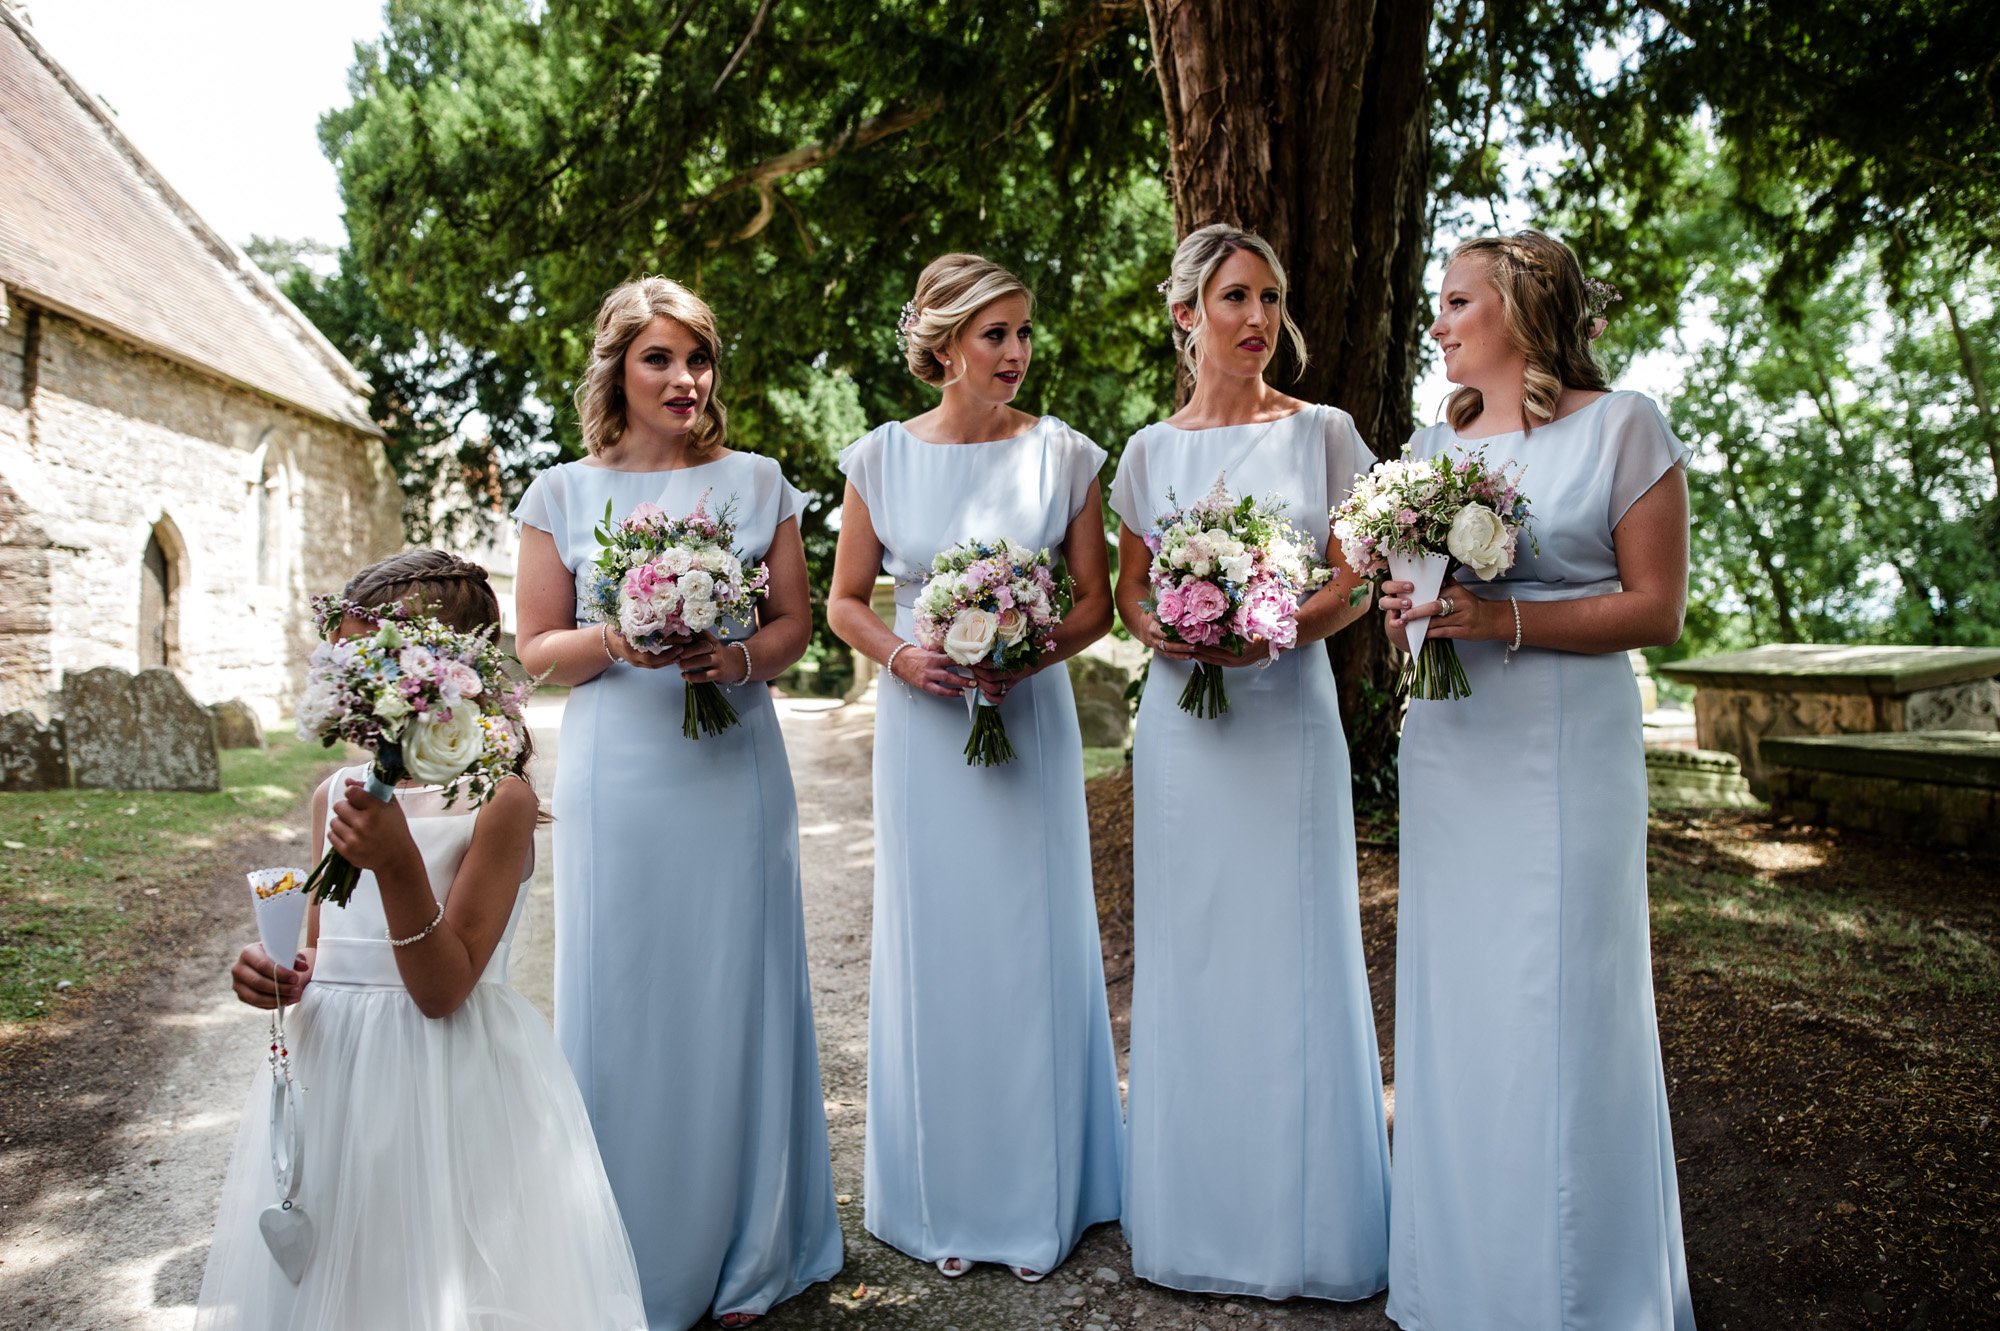 Cotswold Wedding Photography 11.09.1818.jpg